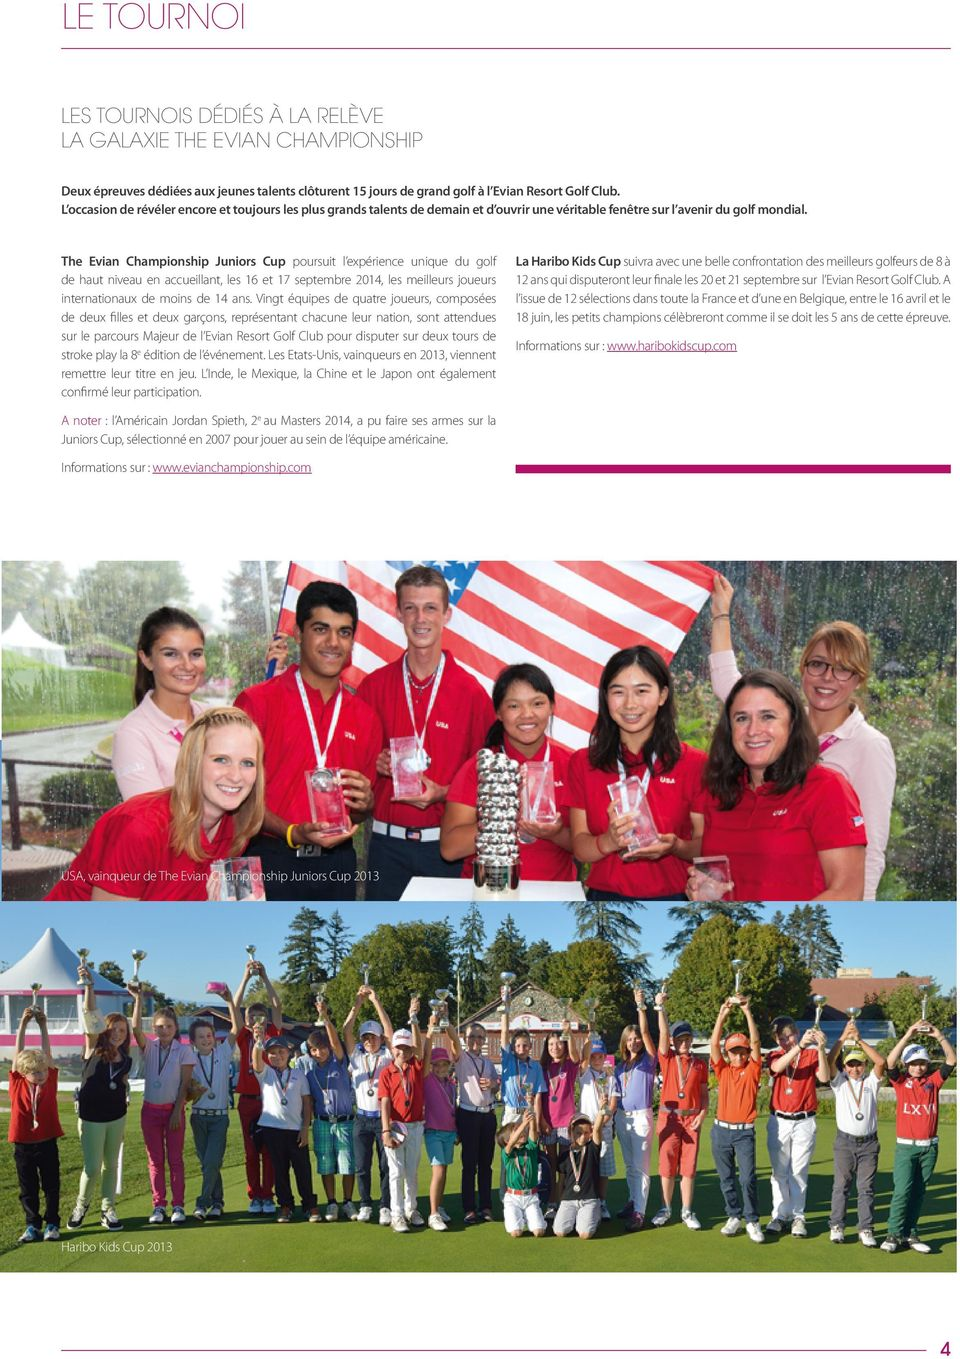 The Evian Championship Juniors Cup poursuit l expérience unique du golf de haut niveau en accueillant, les 16 et 17 septembre 2014, les meilleurs joueurs internationaux de moins de 14 ans.